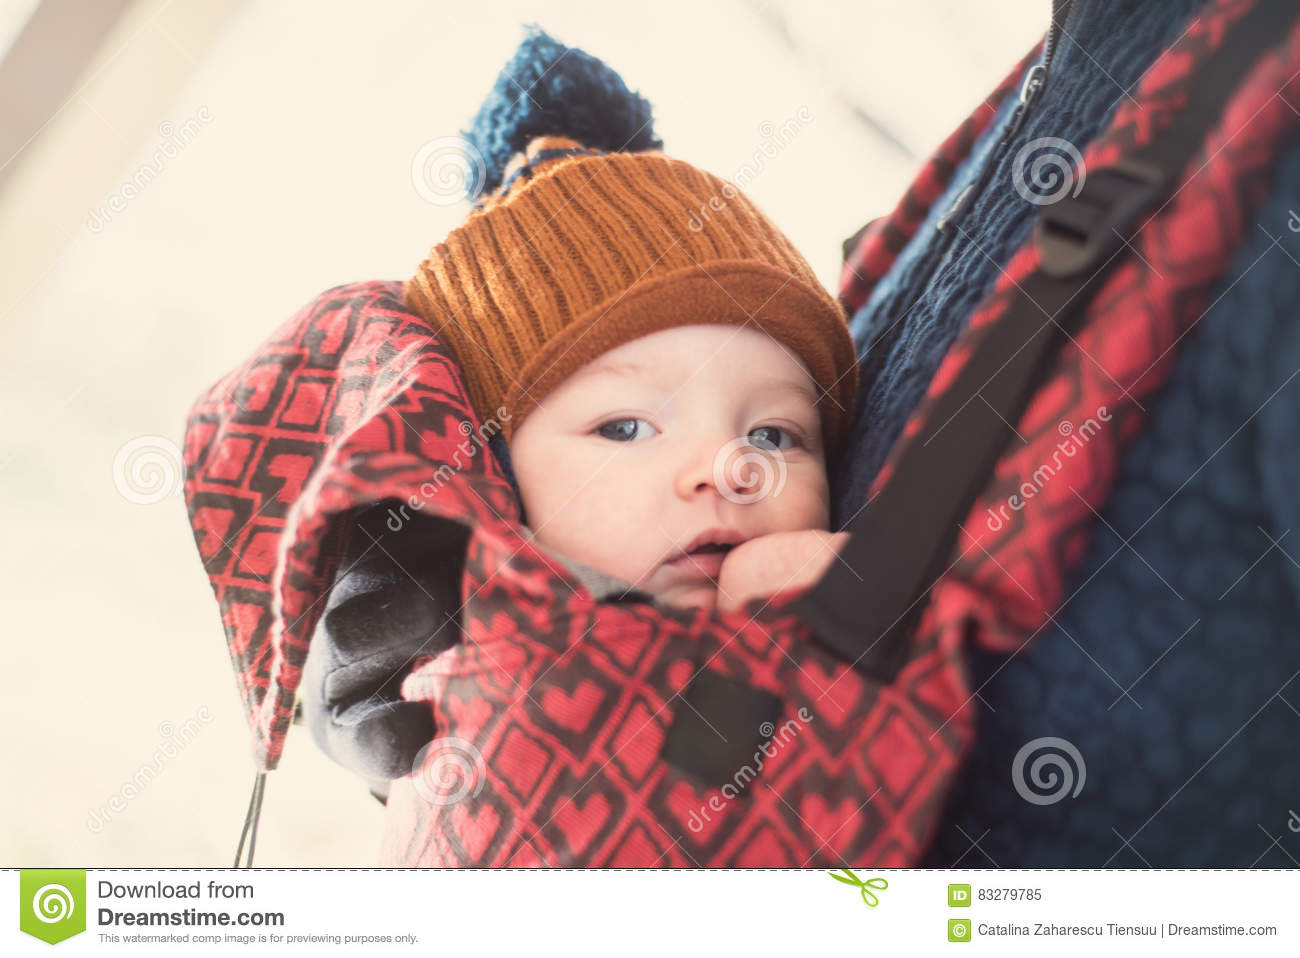 Closeup portrait of baby in a carrier